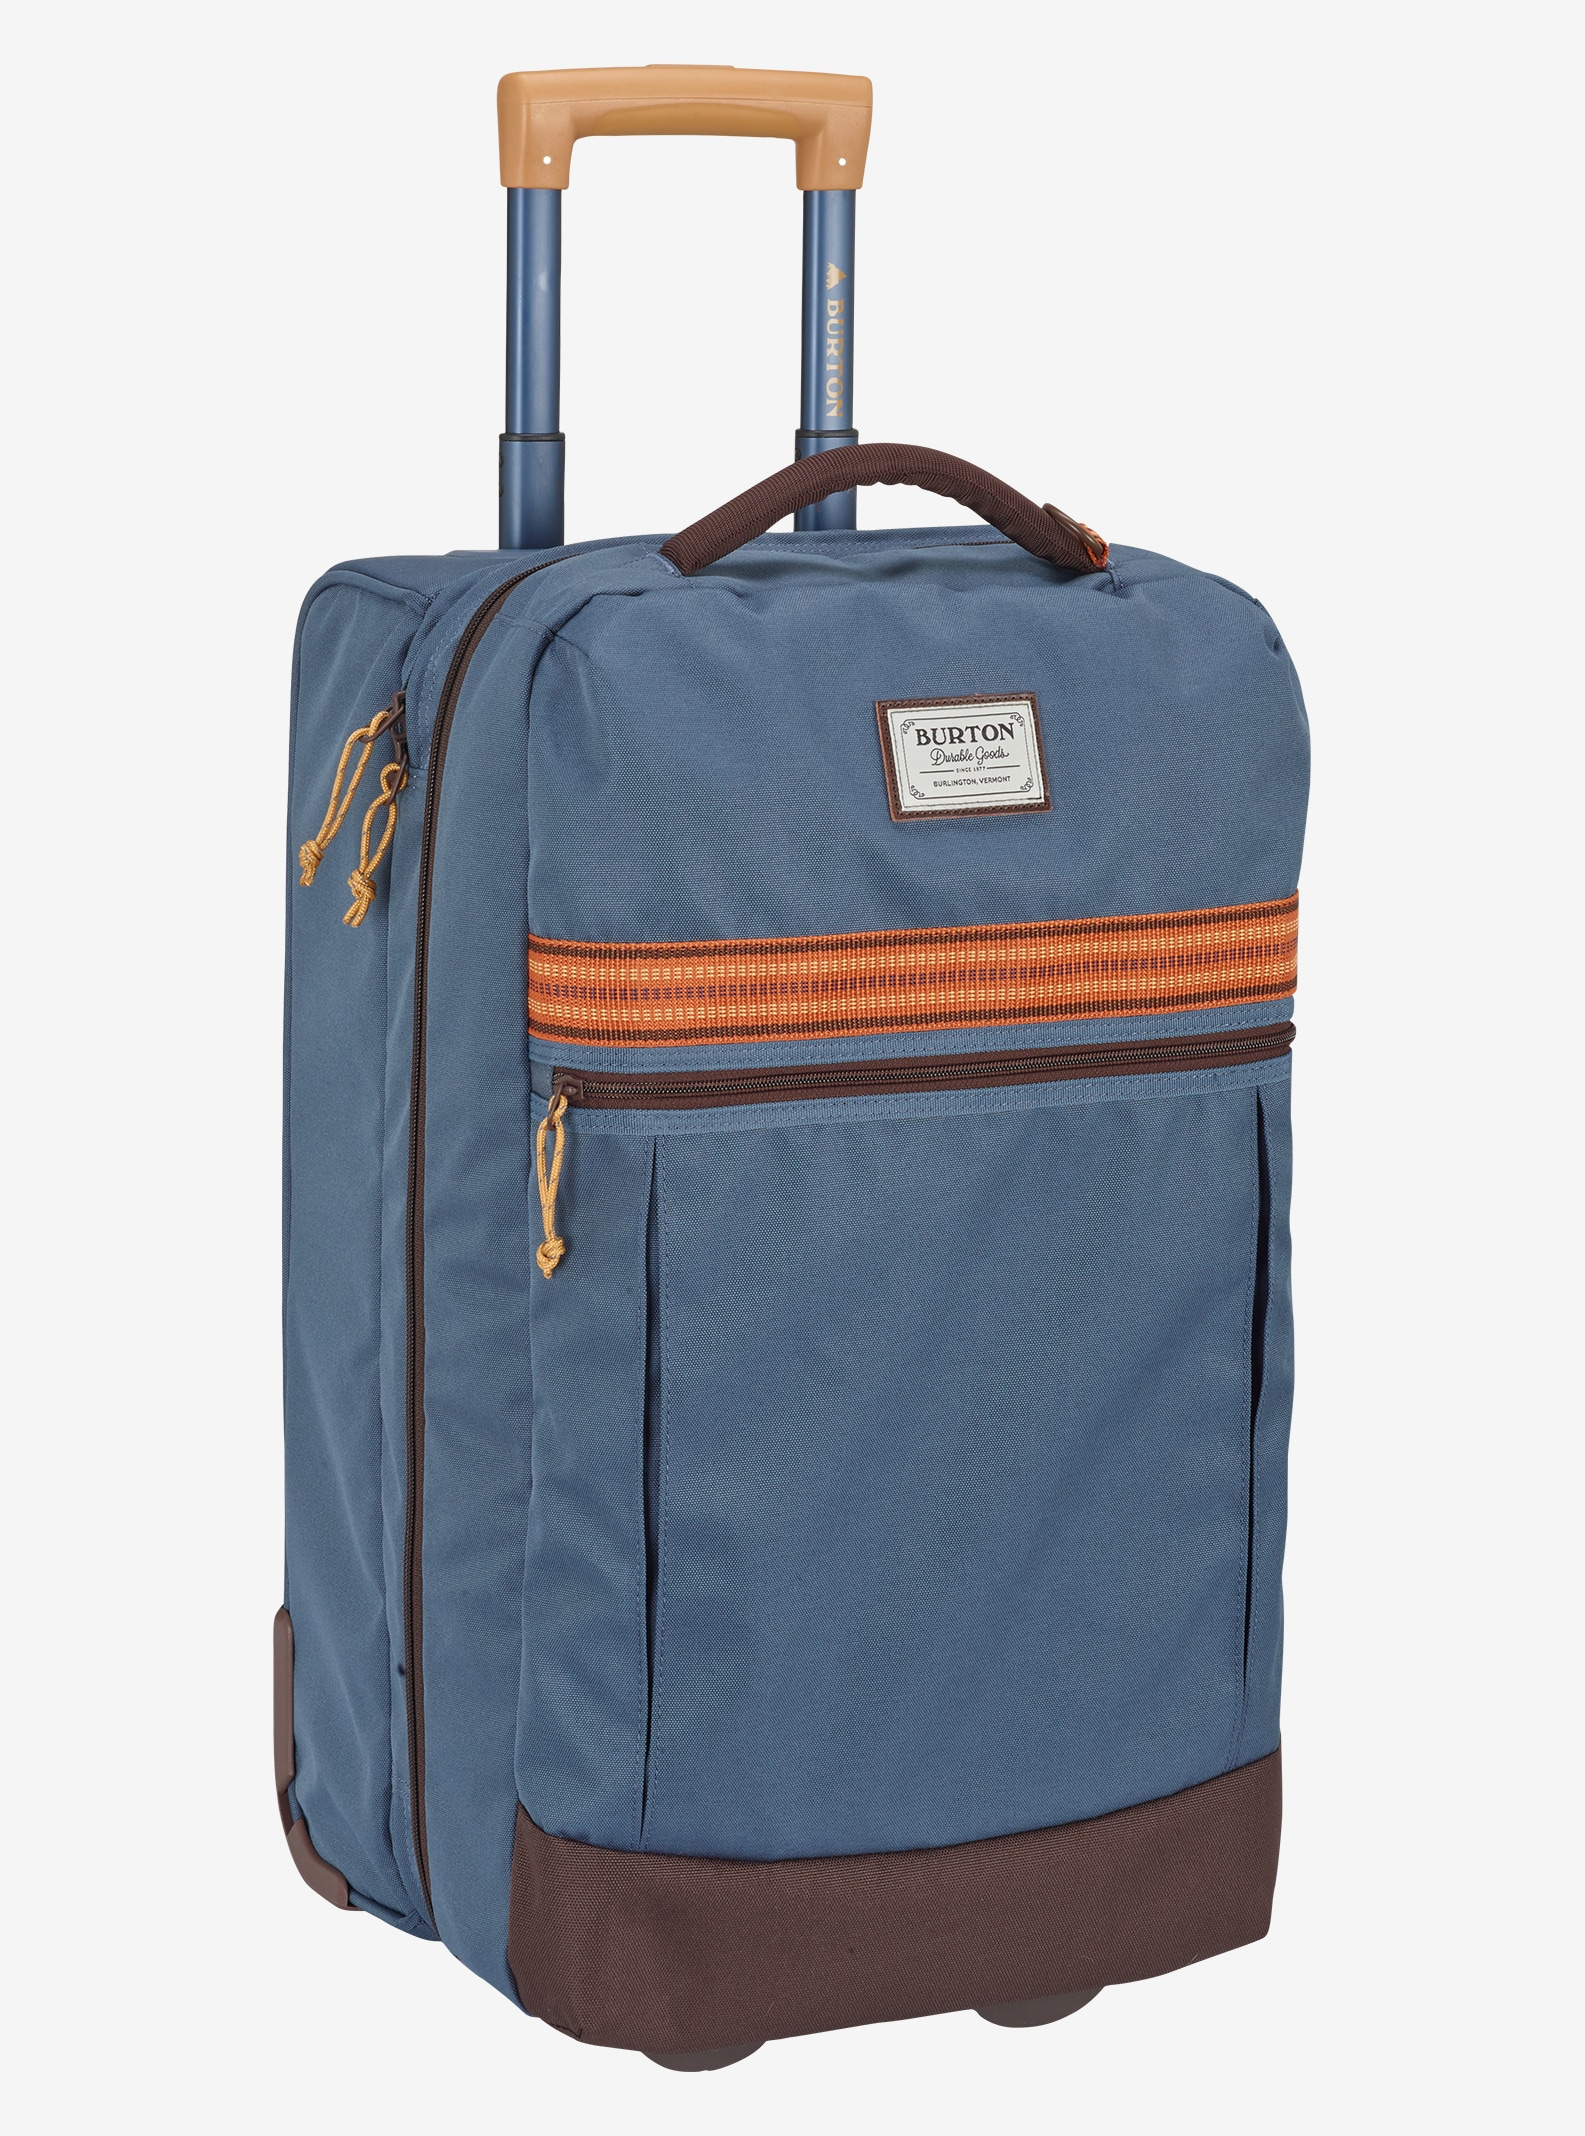 Burton Charter Roller Travel Bag shown in Washed Blue